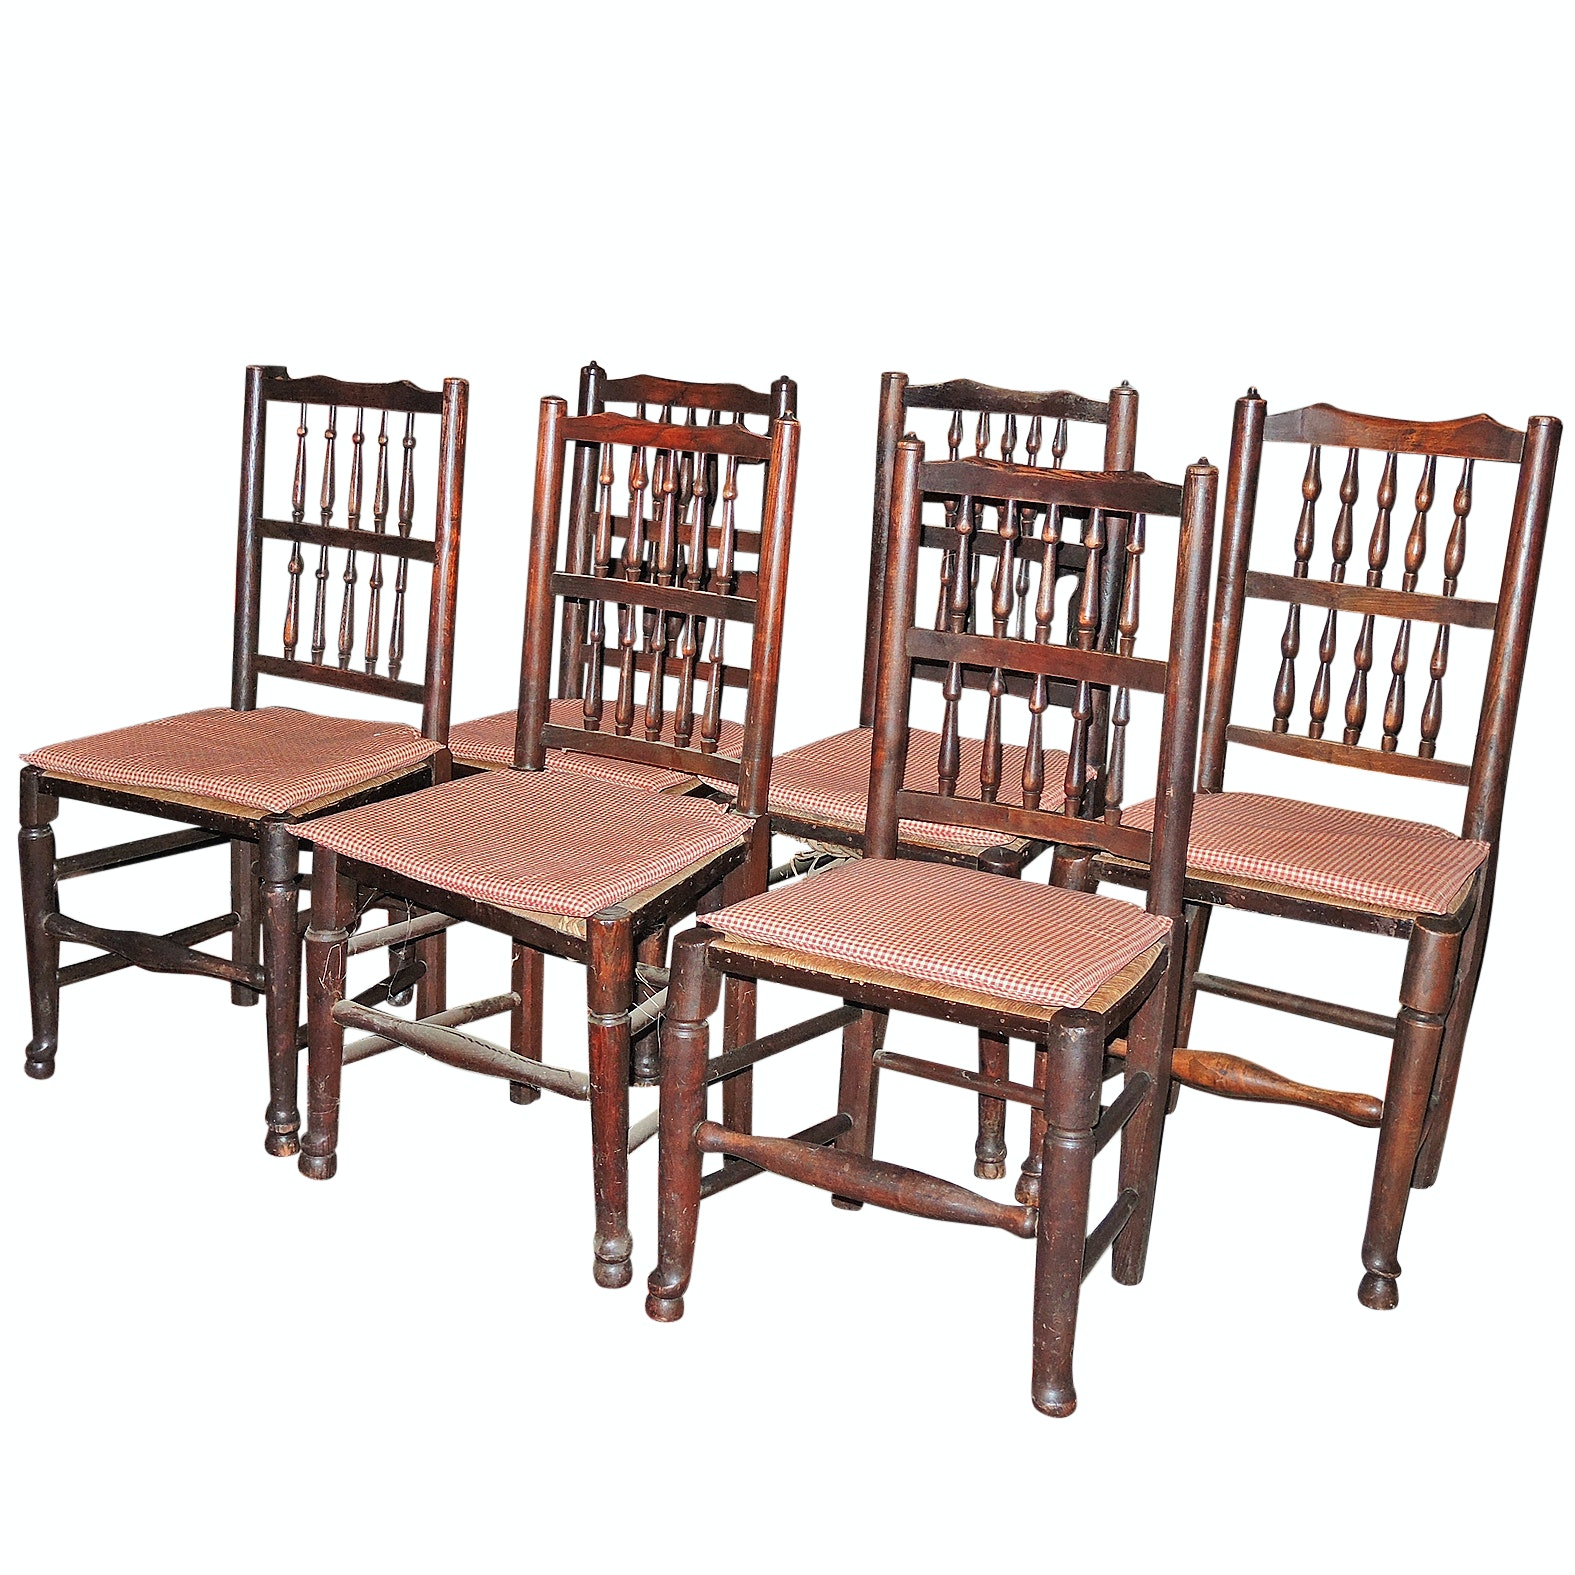 Six Queen Anne Elm Chairs, Early 19th Century